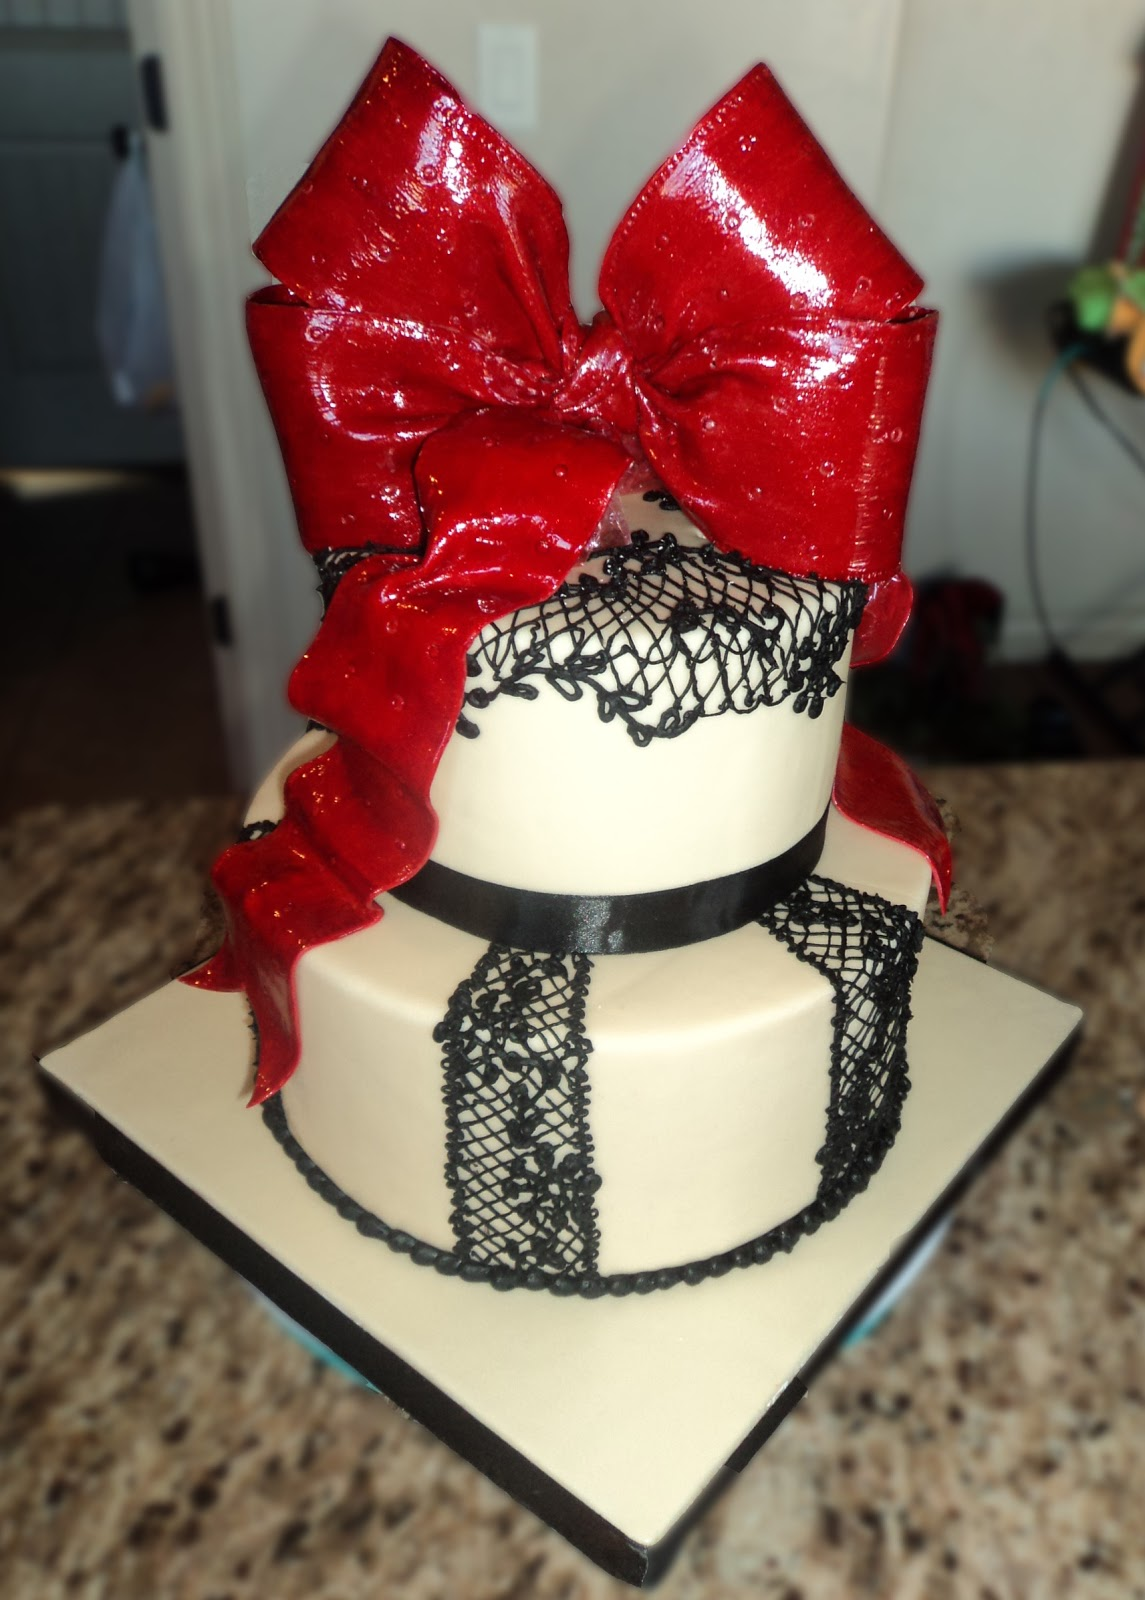 Delectable Cakes 2012